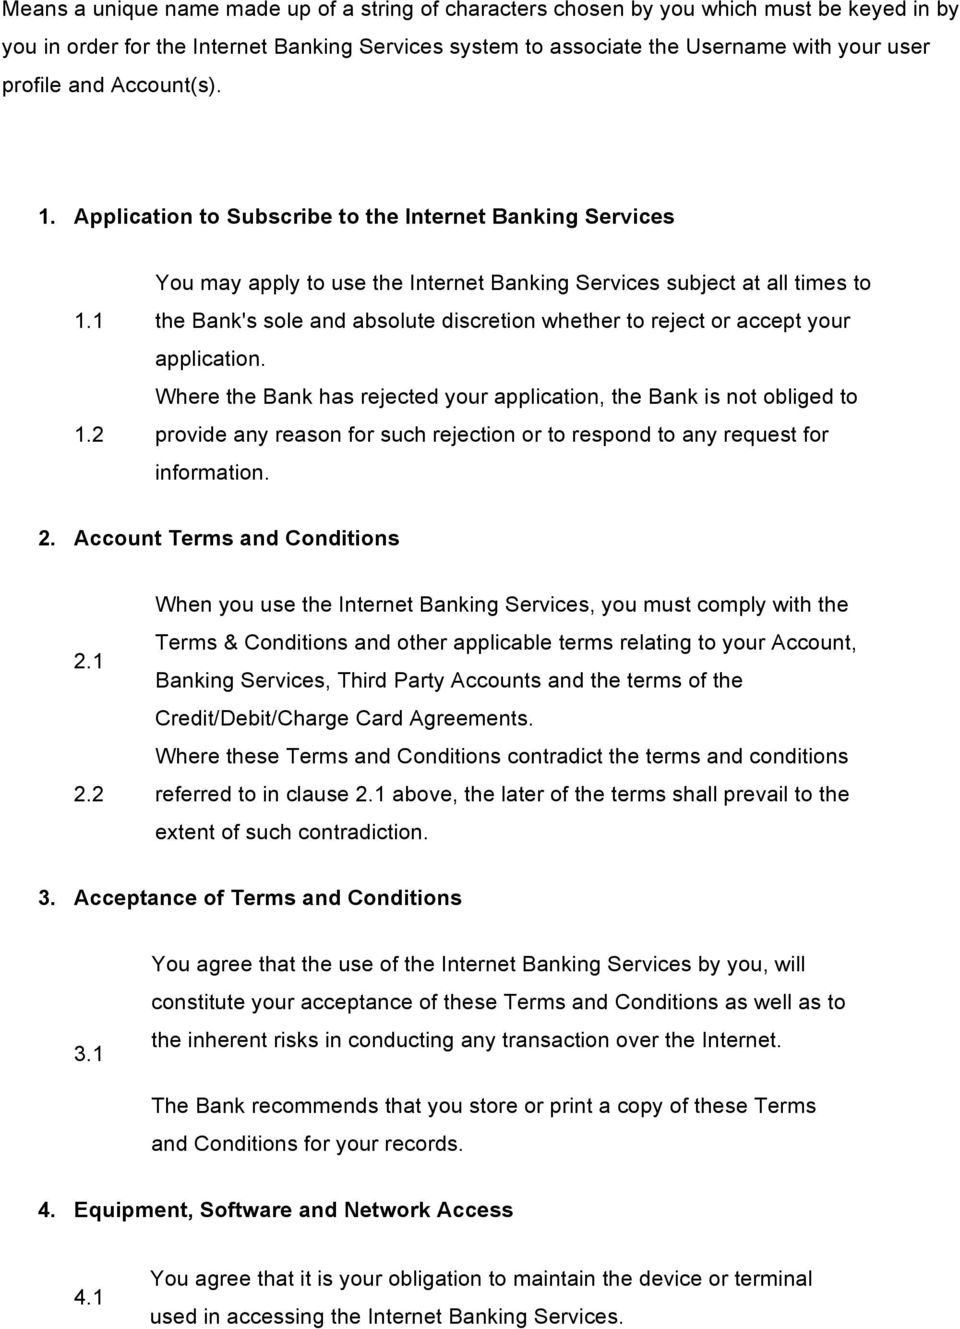 2 You may apply to use the Internet Banking Services subject at all times to the Bank's sole and absolute discretion whether to reject or accept your application.